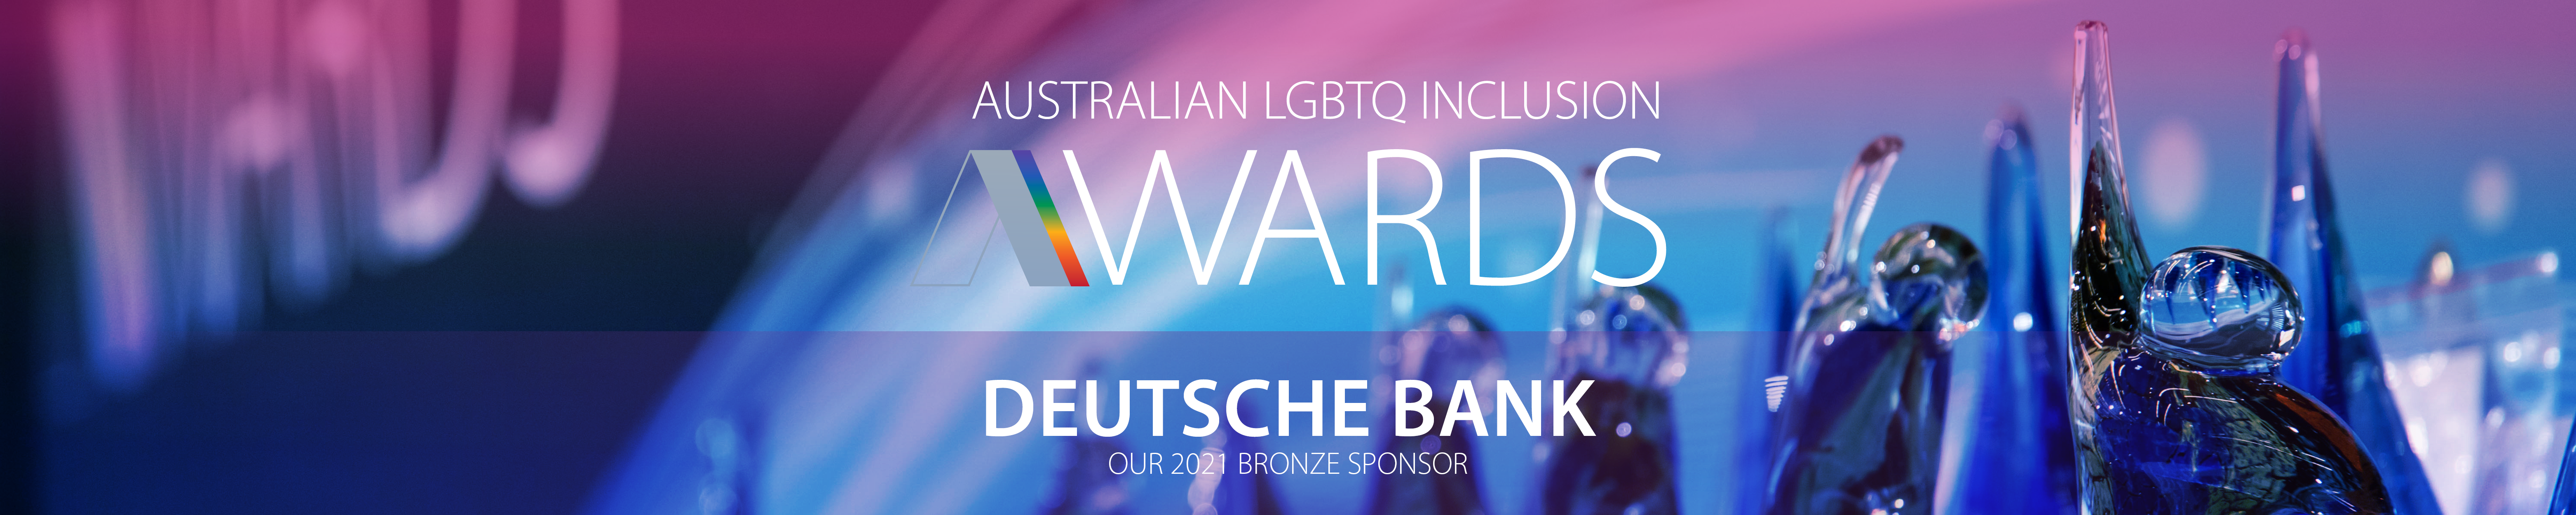 2021AWARDS_Sponsor_DeutscheBank